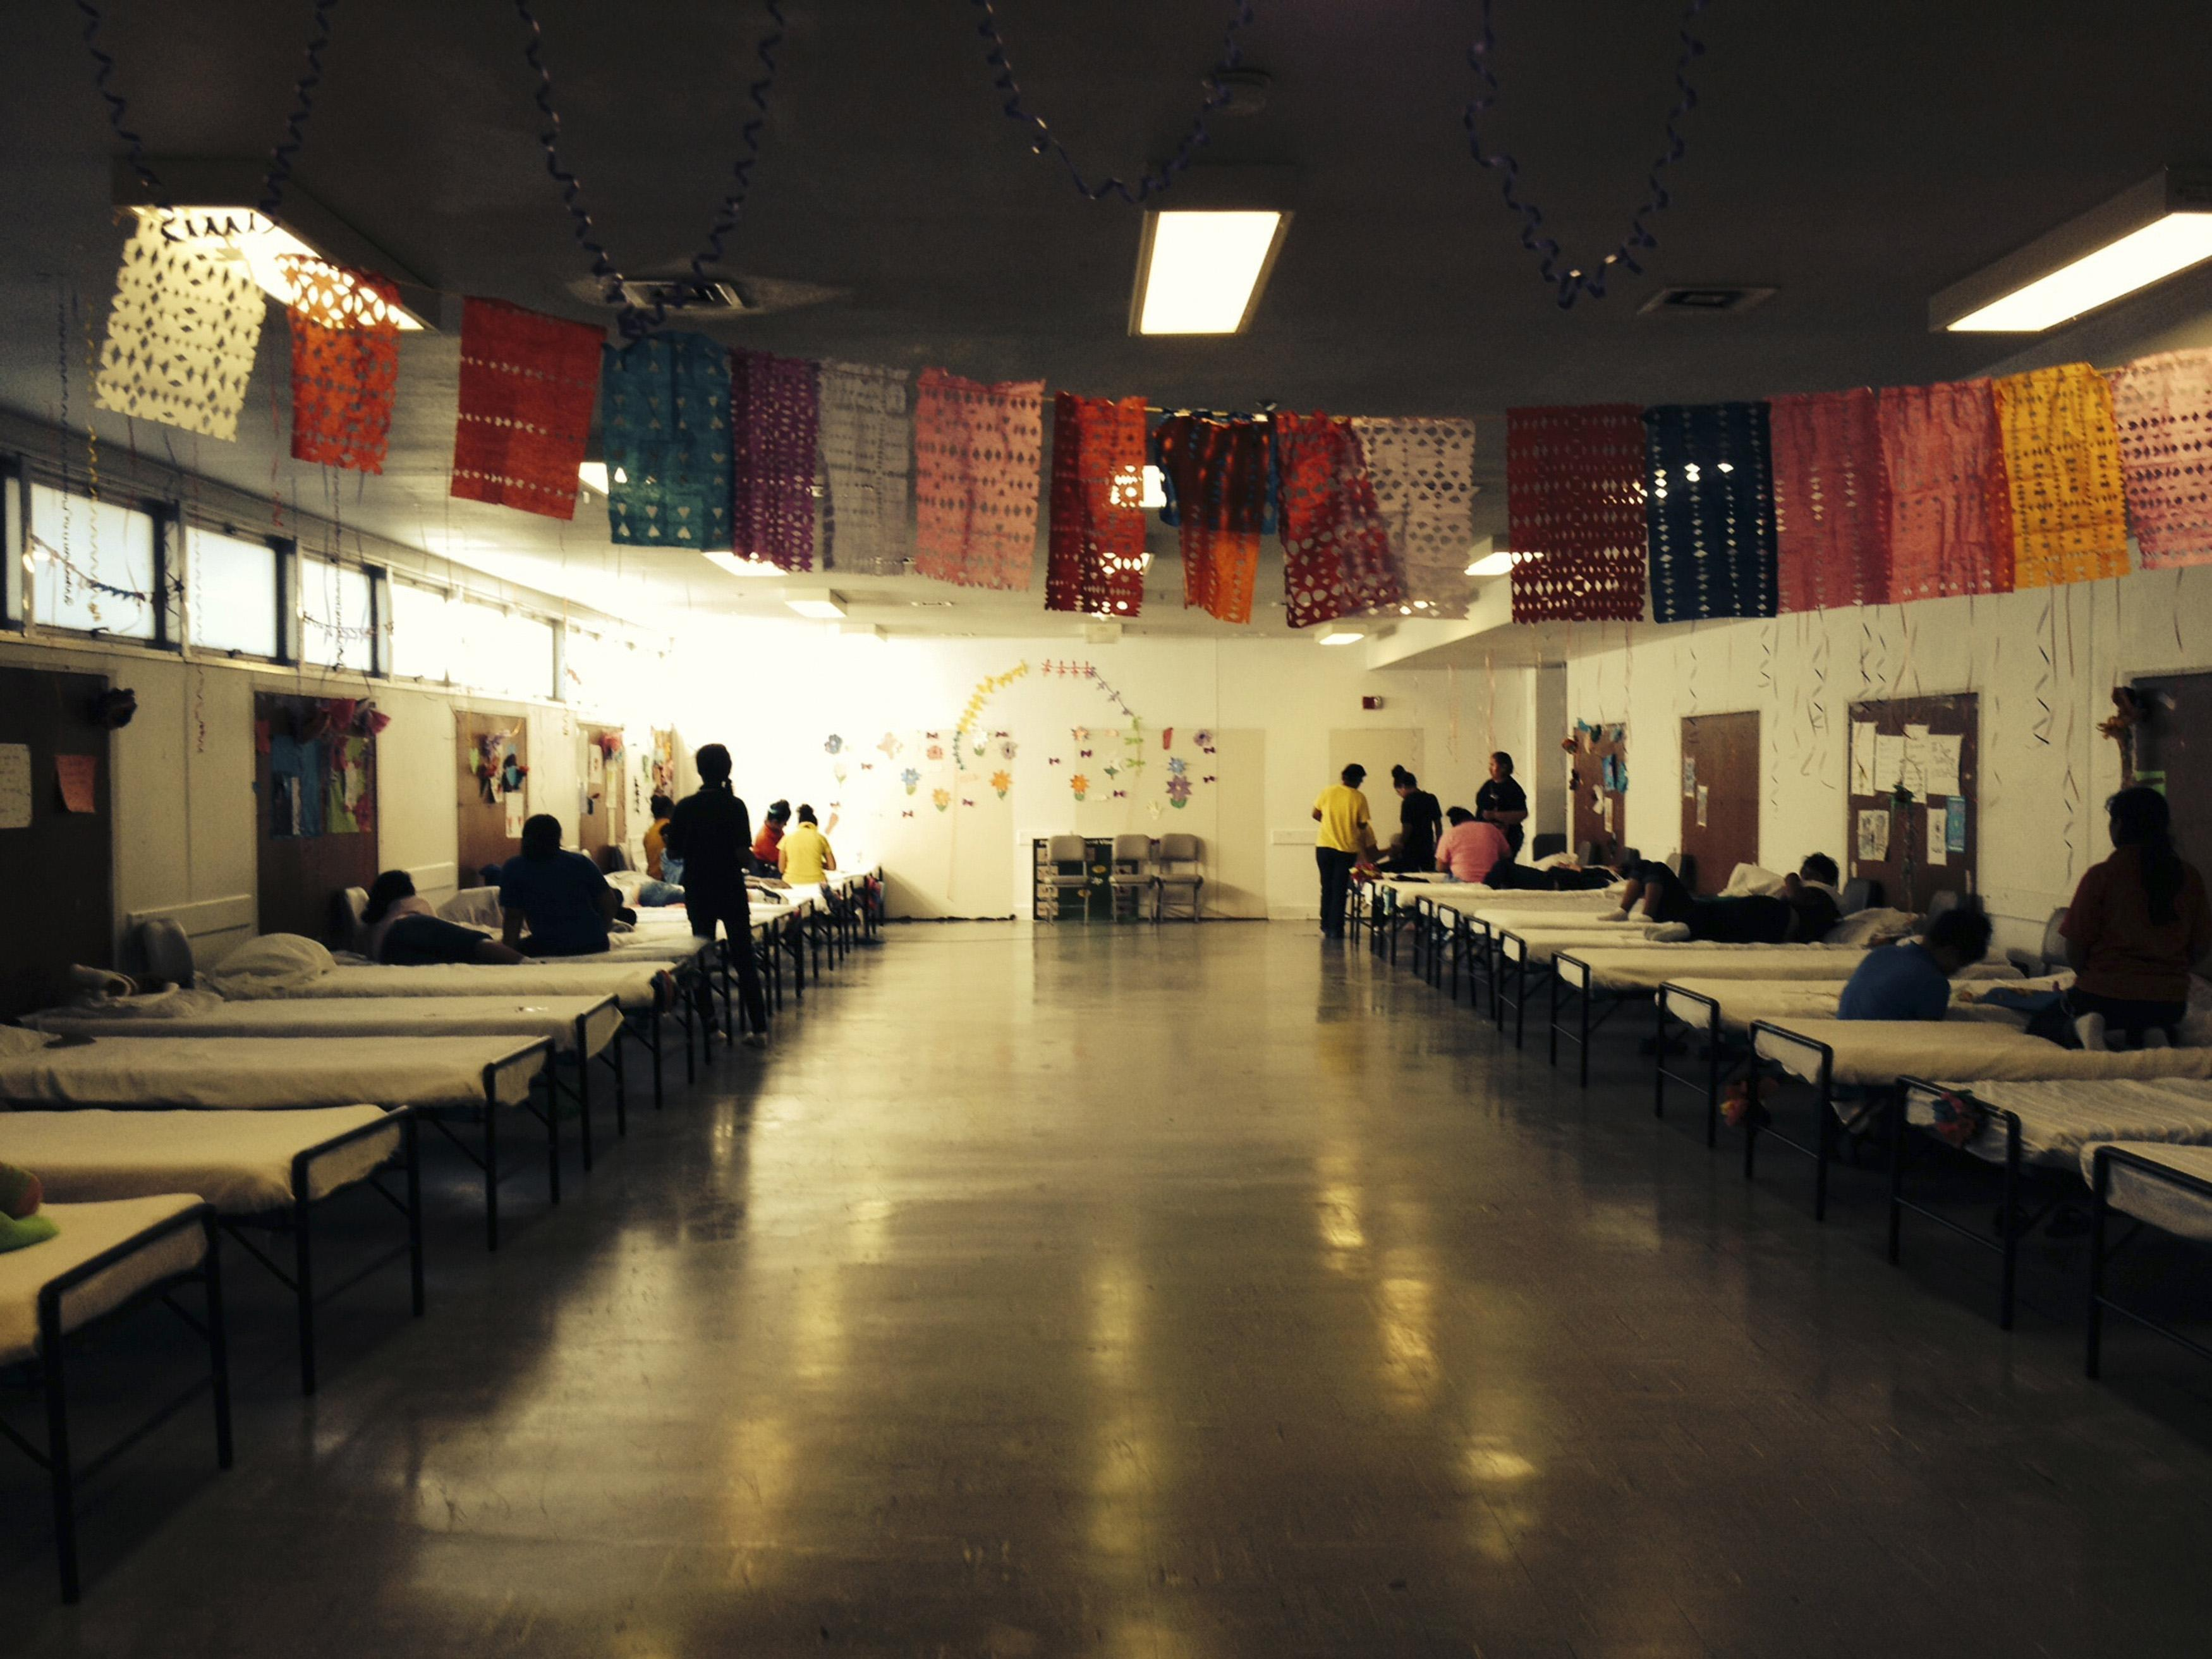 Image: A dormitory used to house children illegally crossing the border from Central and South America without adults is seen at Lackland Air Force Base, Texas